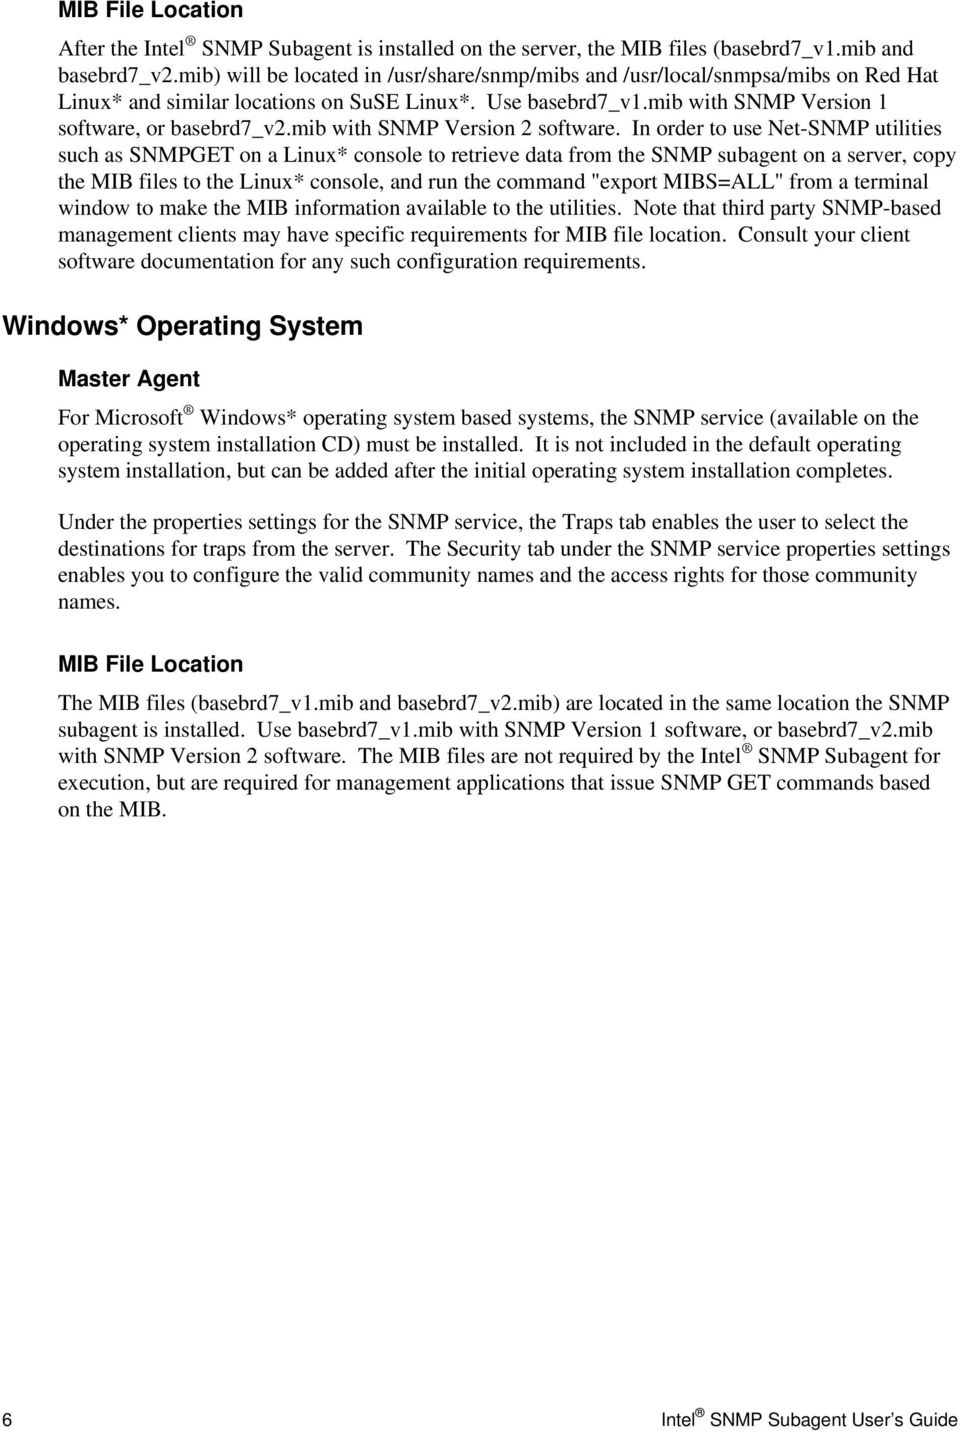 mib with SNMP Version 2 software.